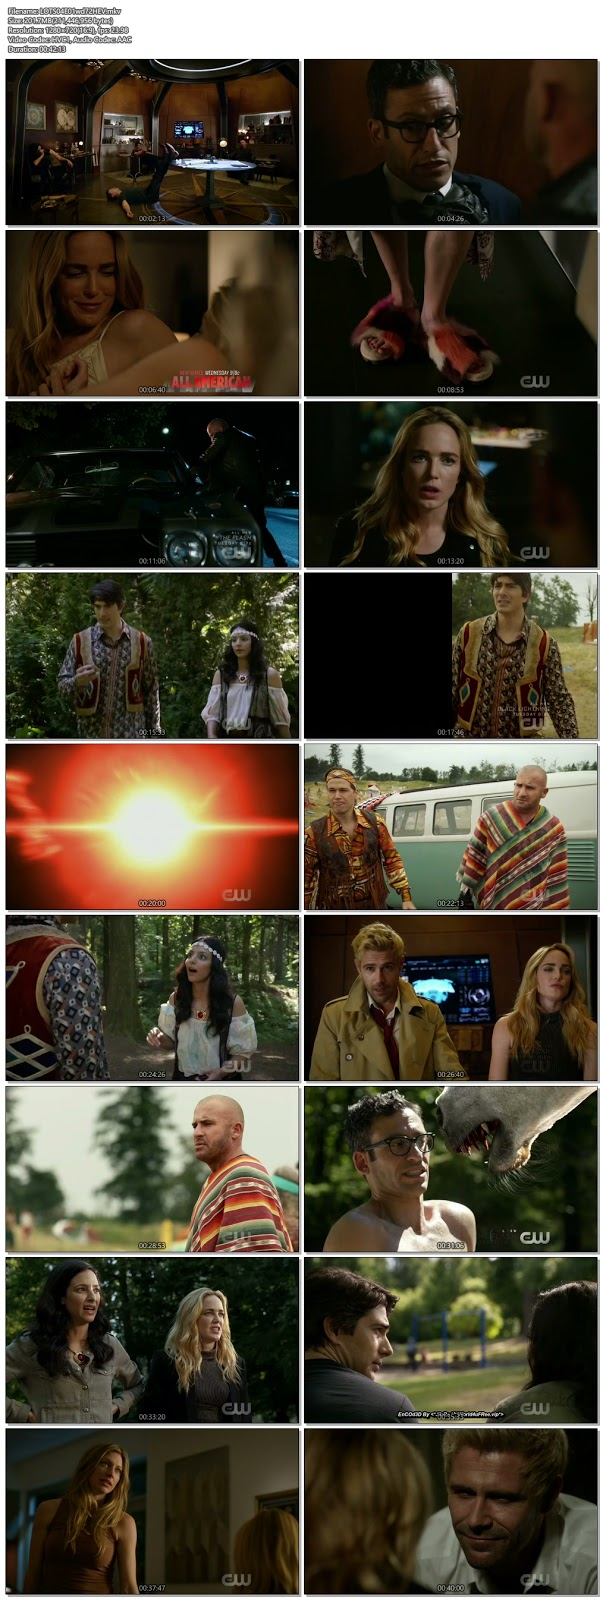 Legends of Tomorrow S04 Episode 01 720p HDTV 200MB ESub HEVC, hollwood tv show hevc x265 hdrip 250mb 270mb free download or watch online at world4ufree.fun